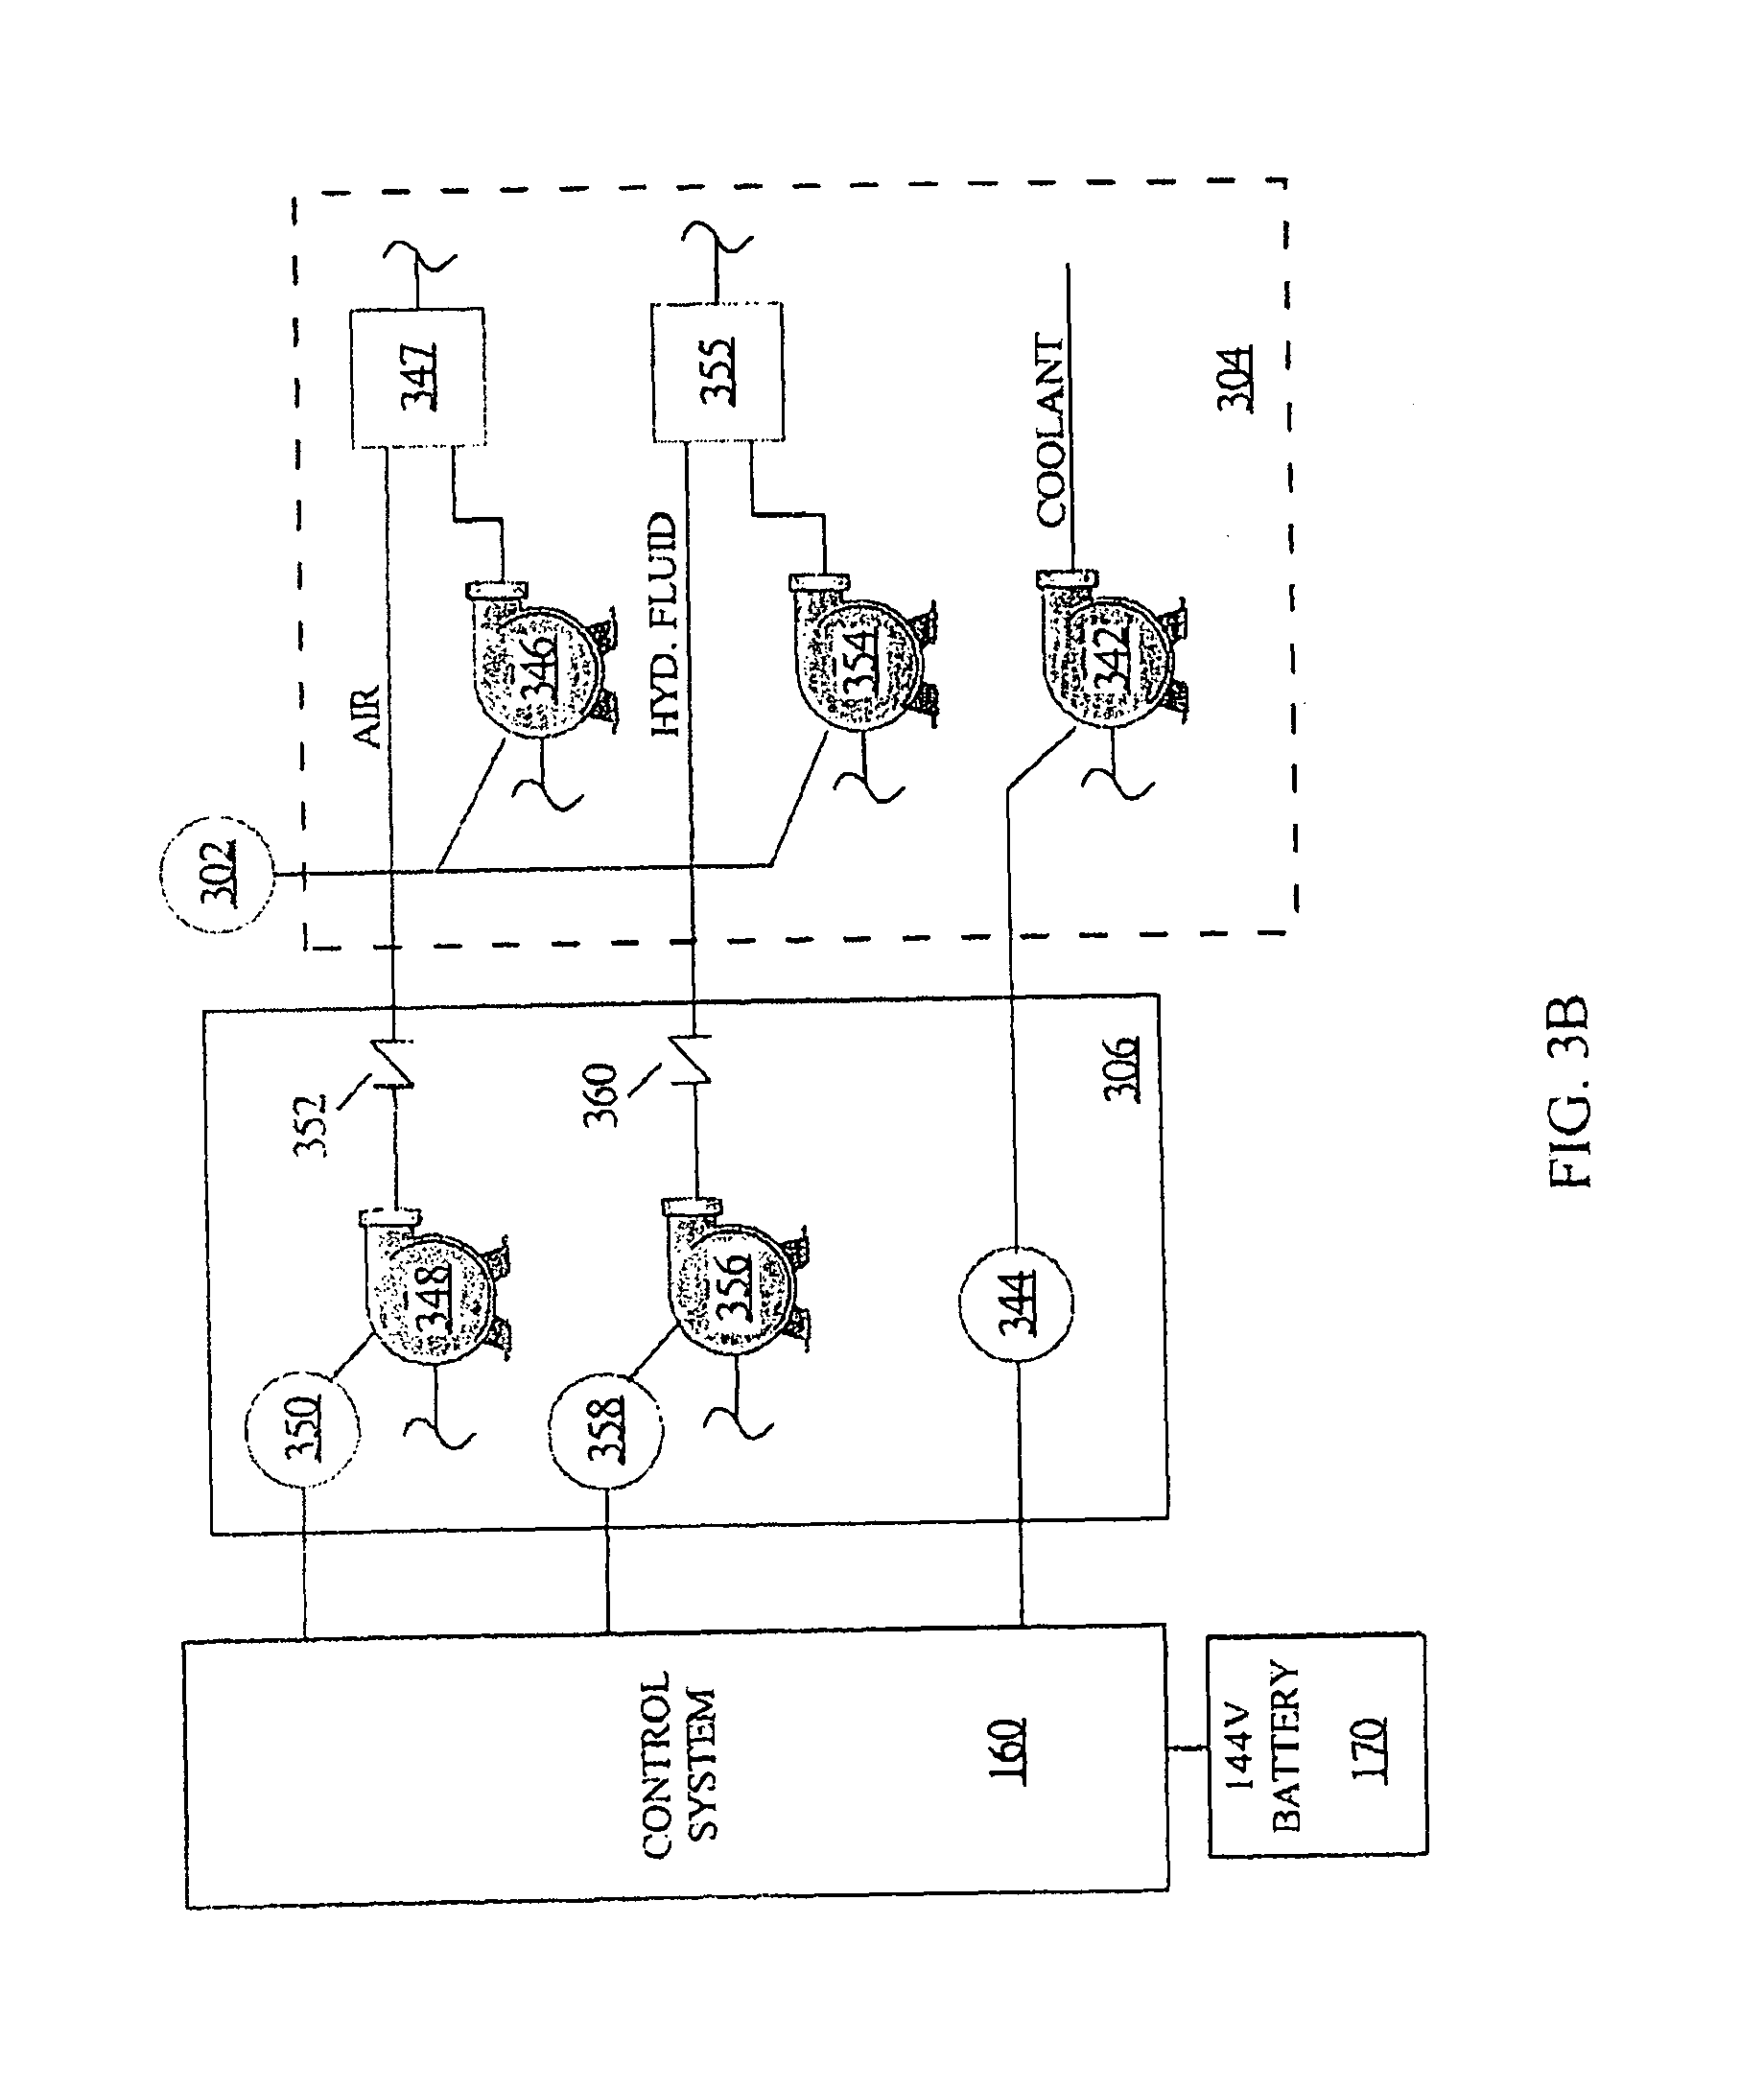 Tripac Apu Wiring Diagram Thermo King Sb 2007 Ctp713b Mack Fuse Box Patent Us Electric Traction Retrofit Patents Drawing